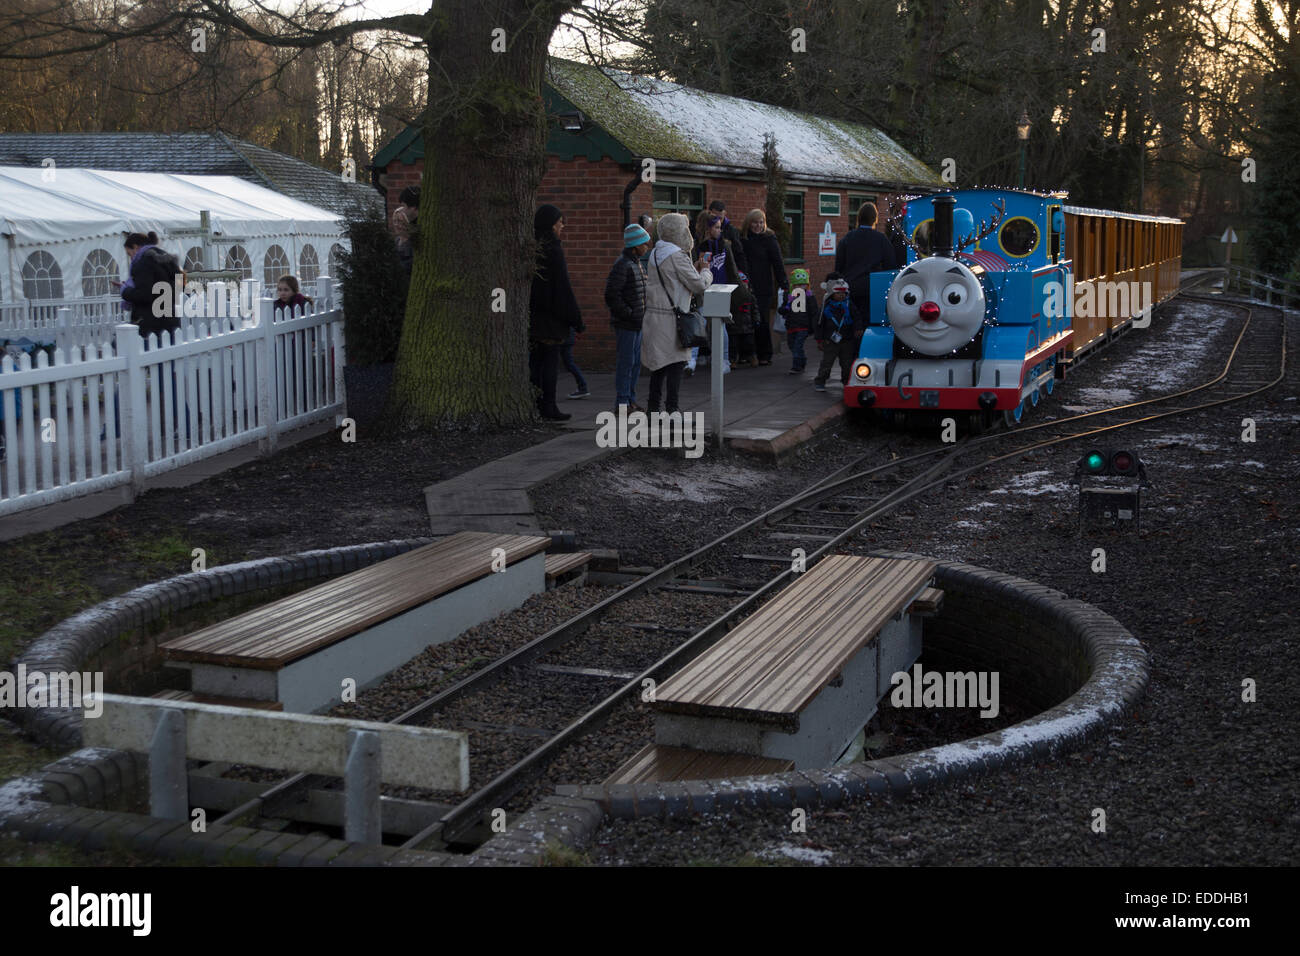 Phenomenal Thomas The Tank Engine Pulls In To A Station At Thomas Land Home Remodeling Inspirations Genioncuboardxyz